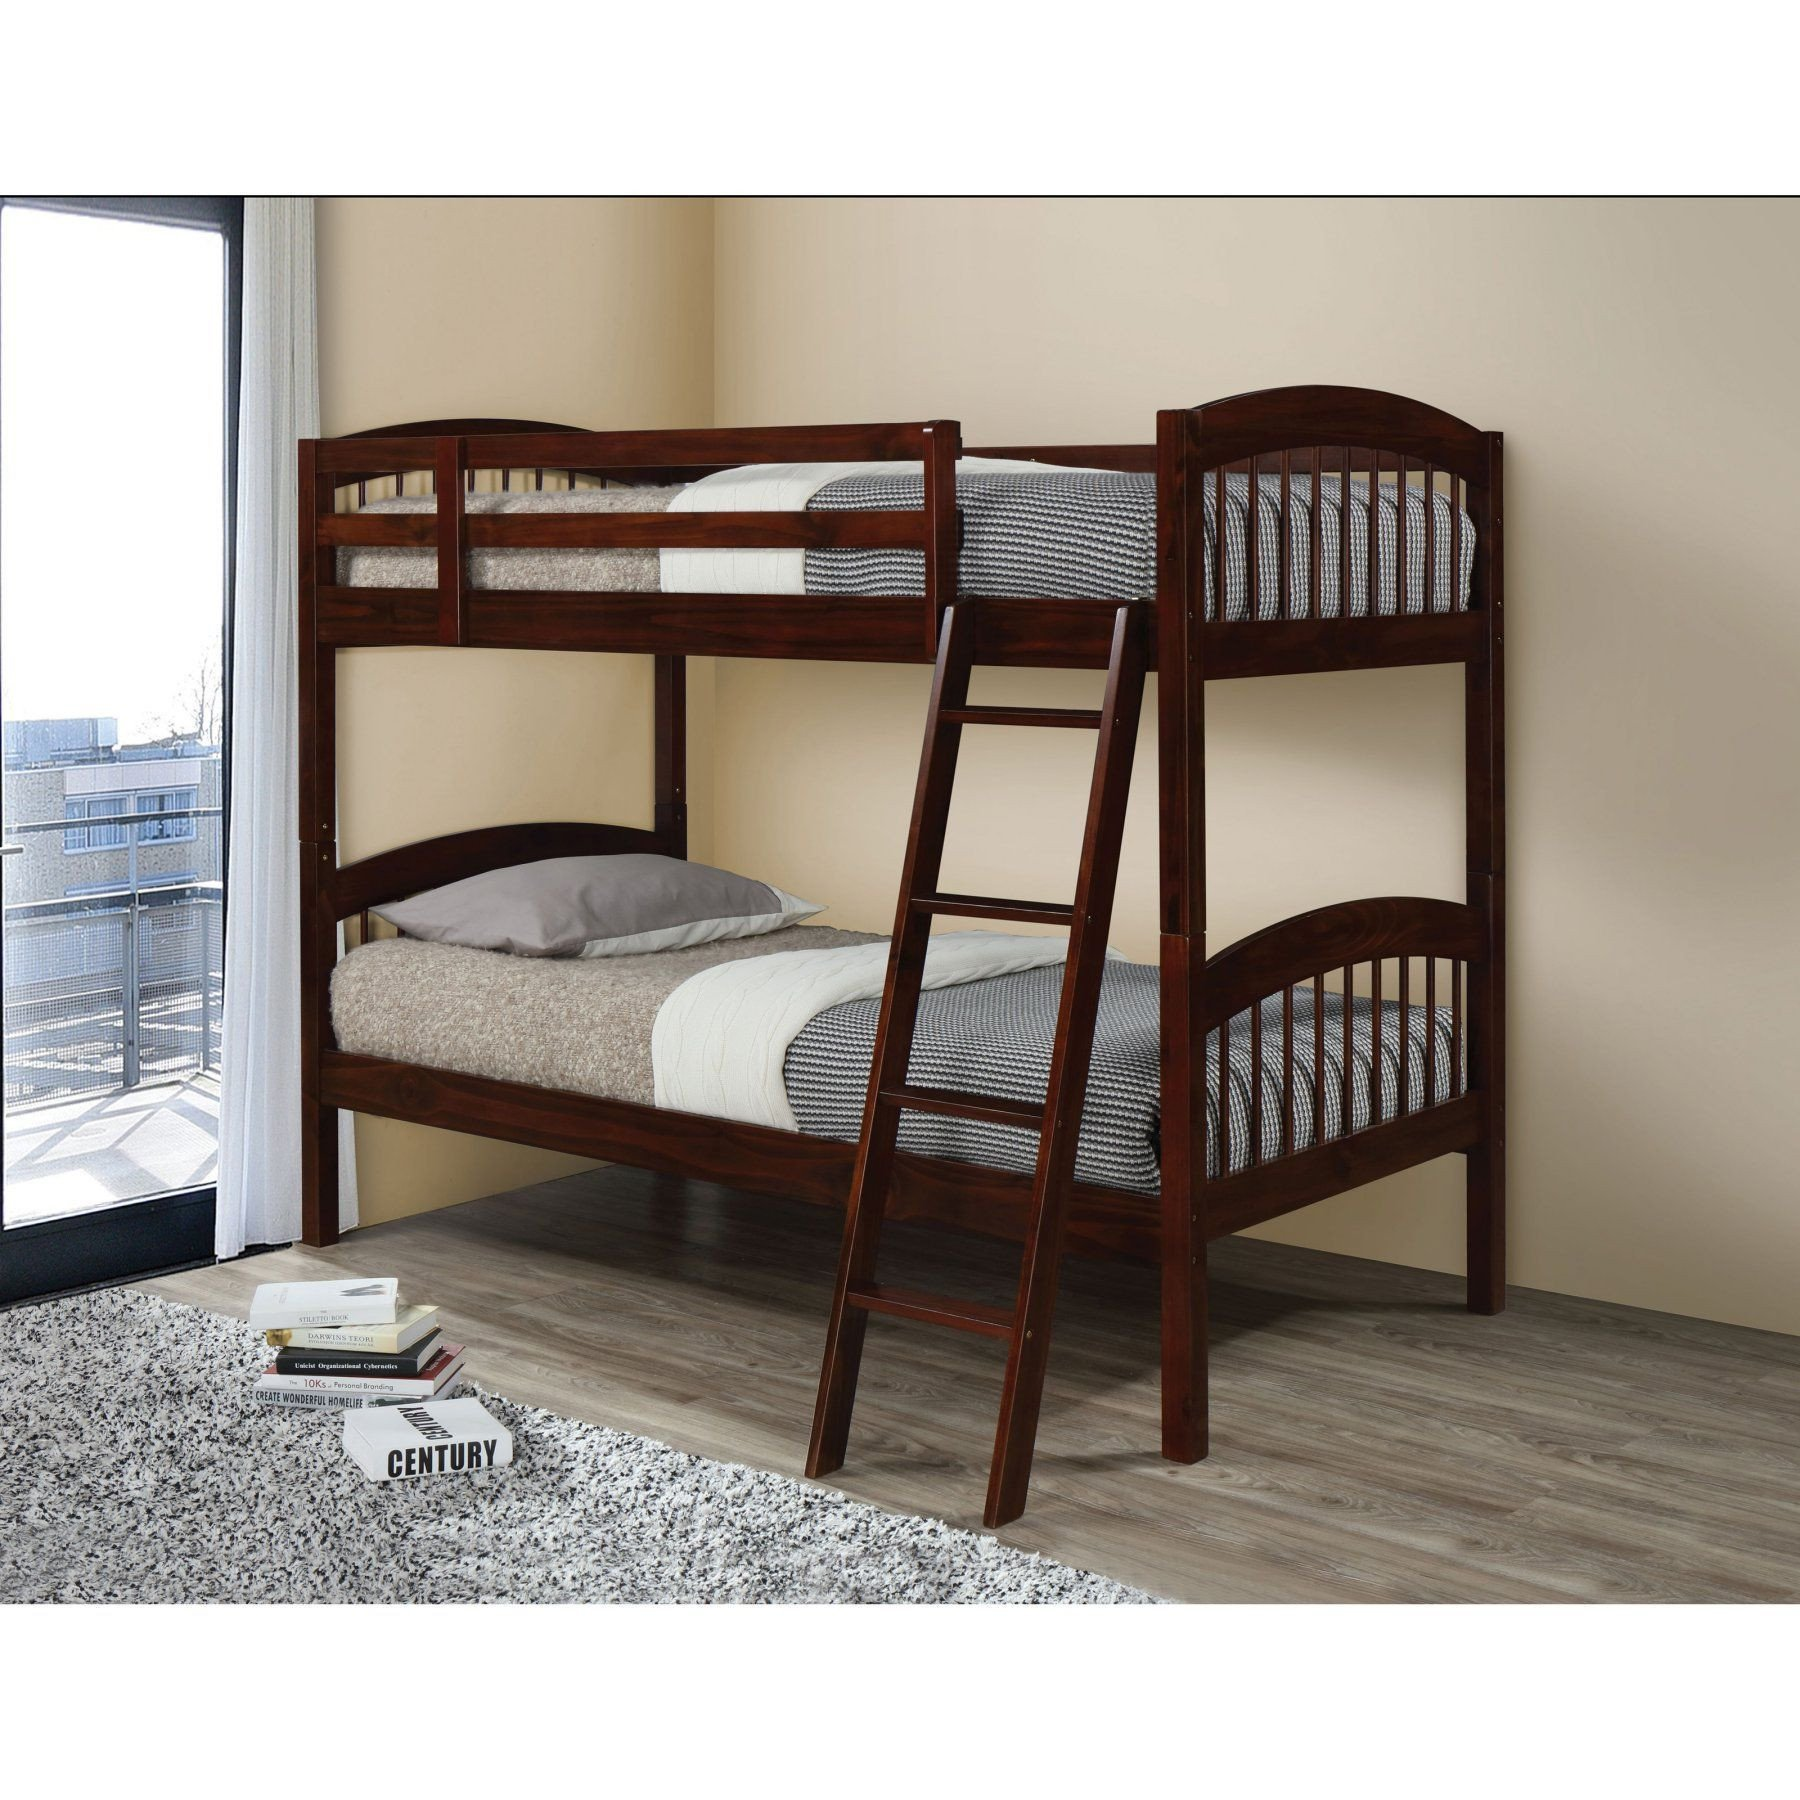 Kids Bunk Bed Bedroom Set Fresh Acme Furniture Manville Bunk Bed B